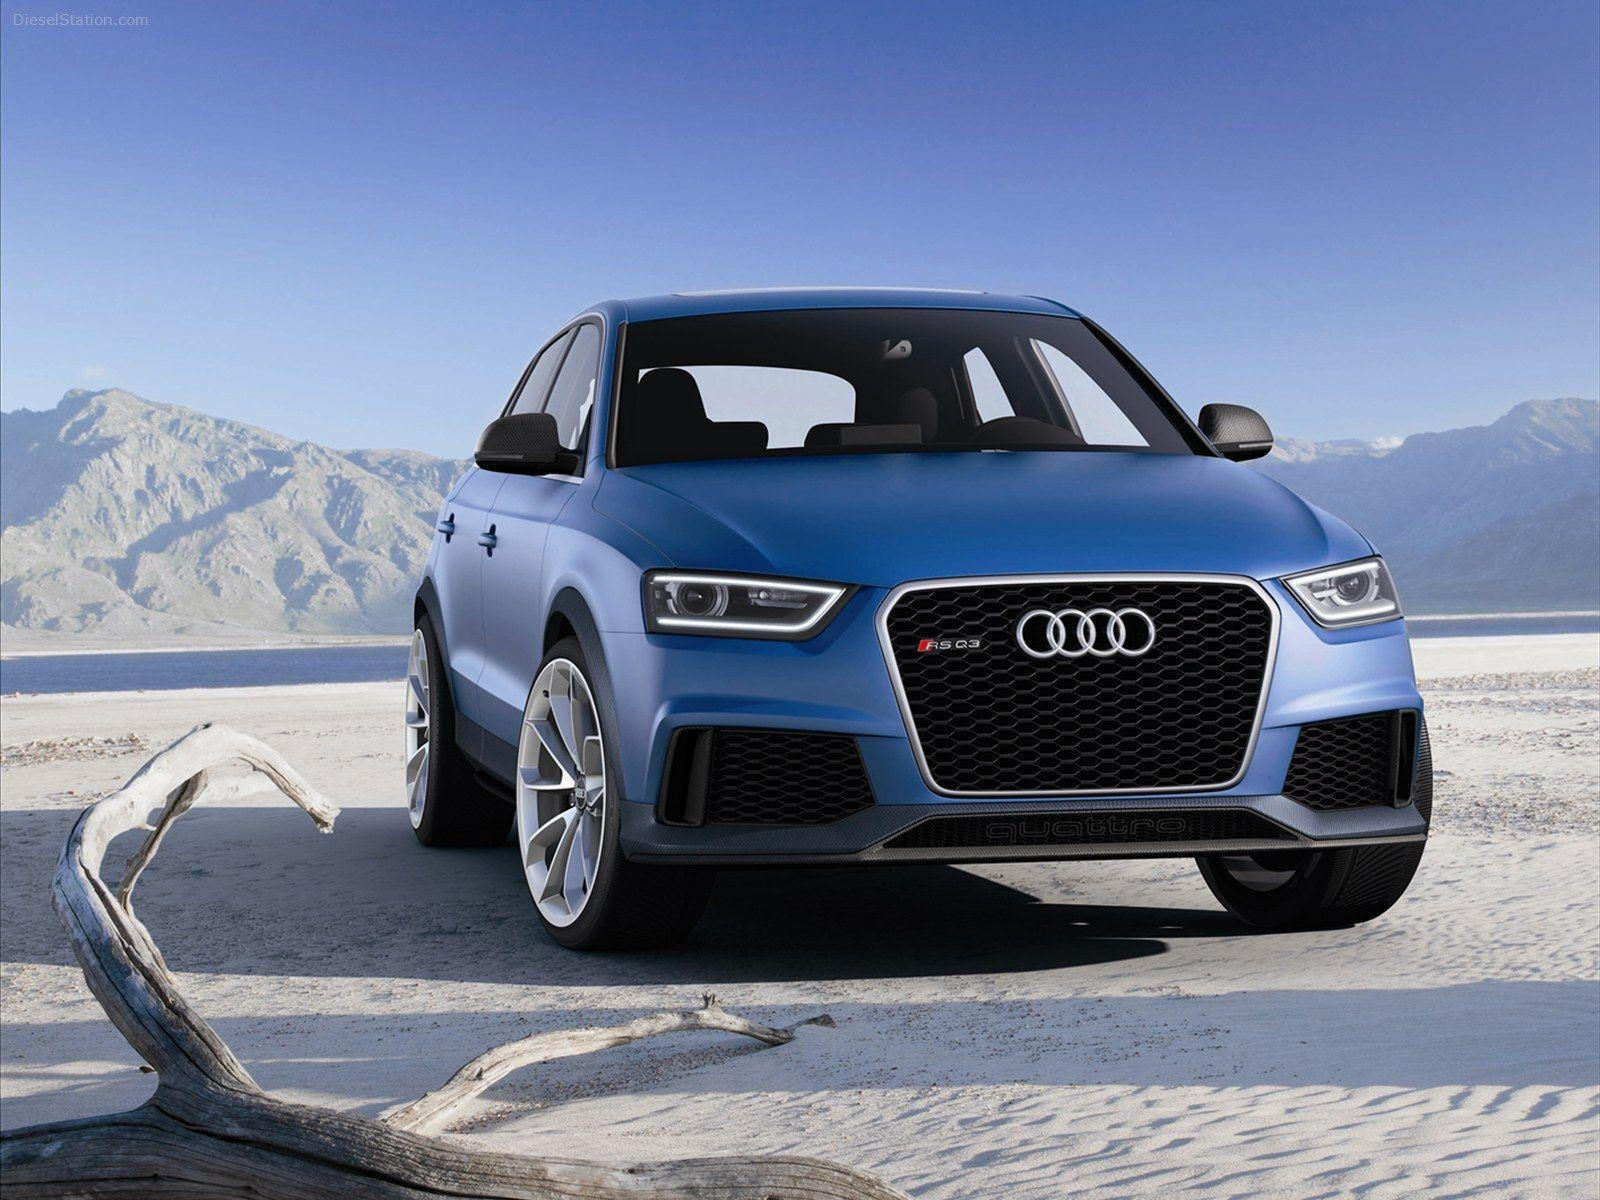 Audi RS Q3 Concept 2012 Exotic Car Wallpapers of 42 : Diesel